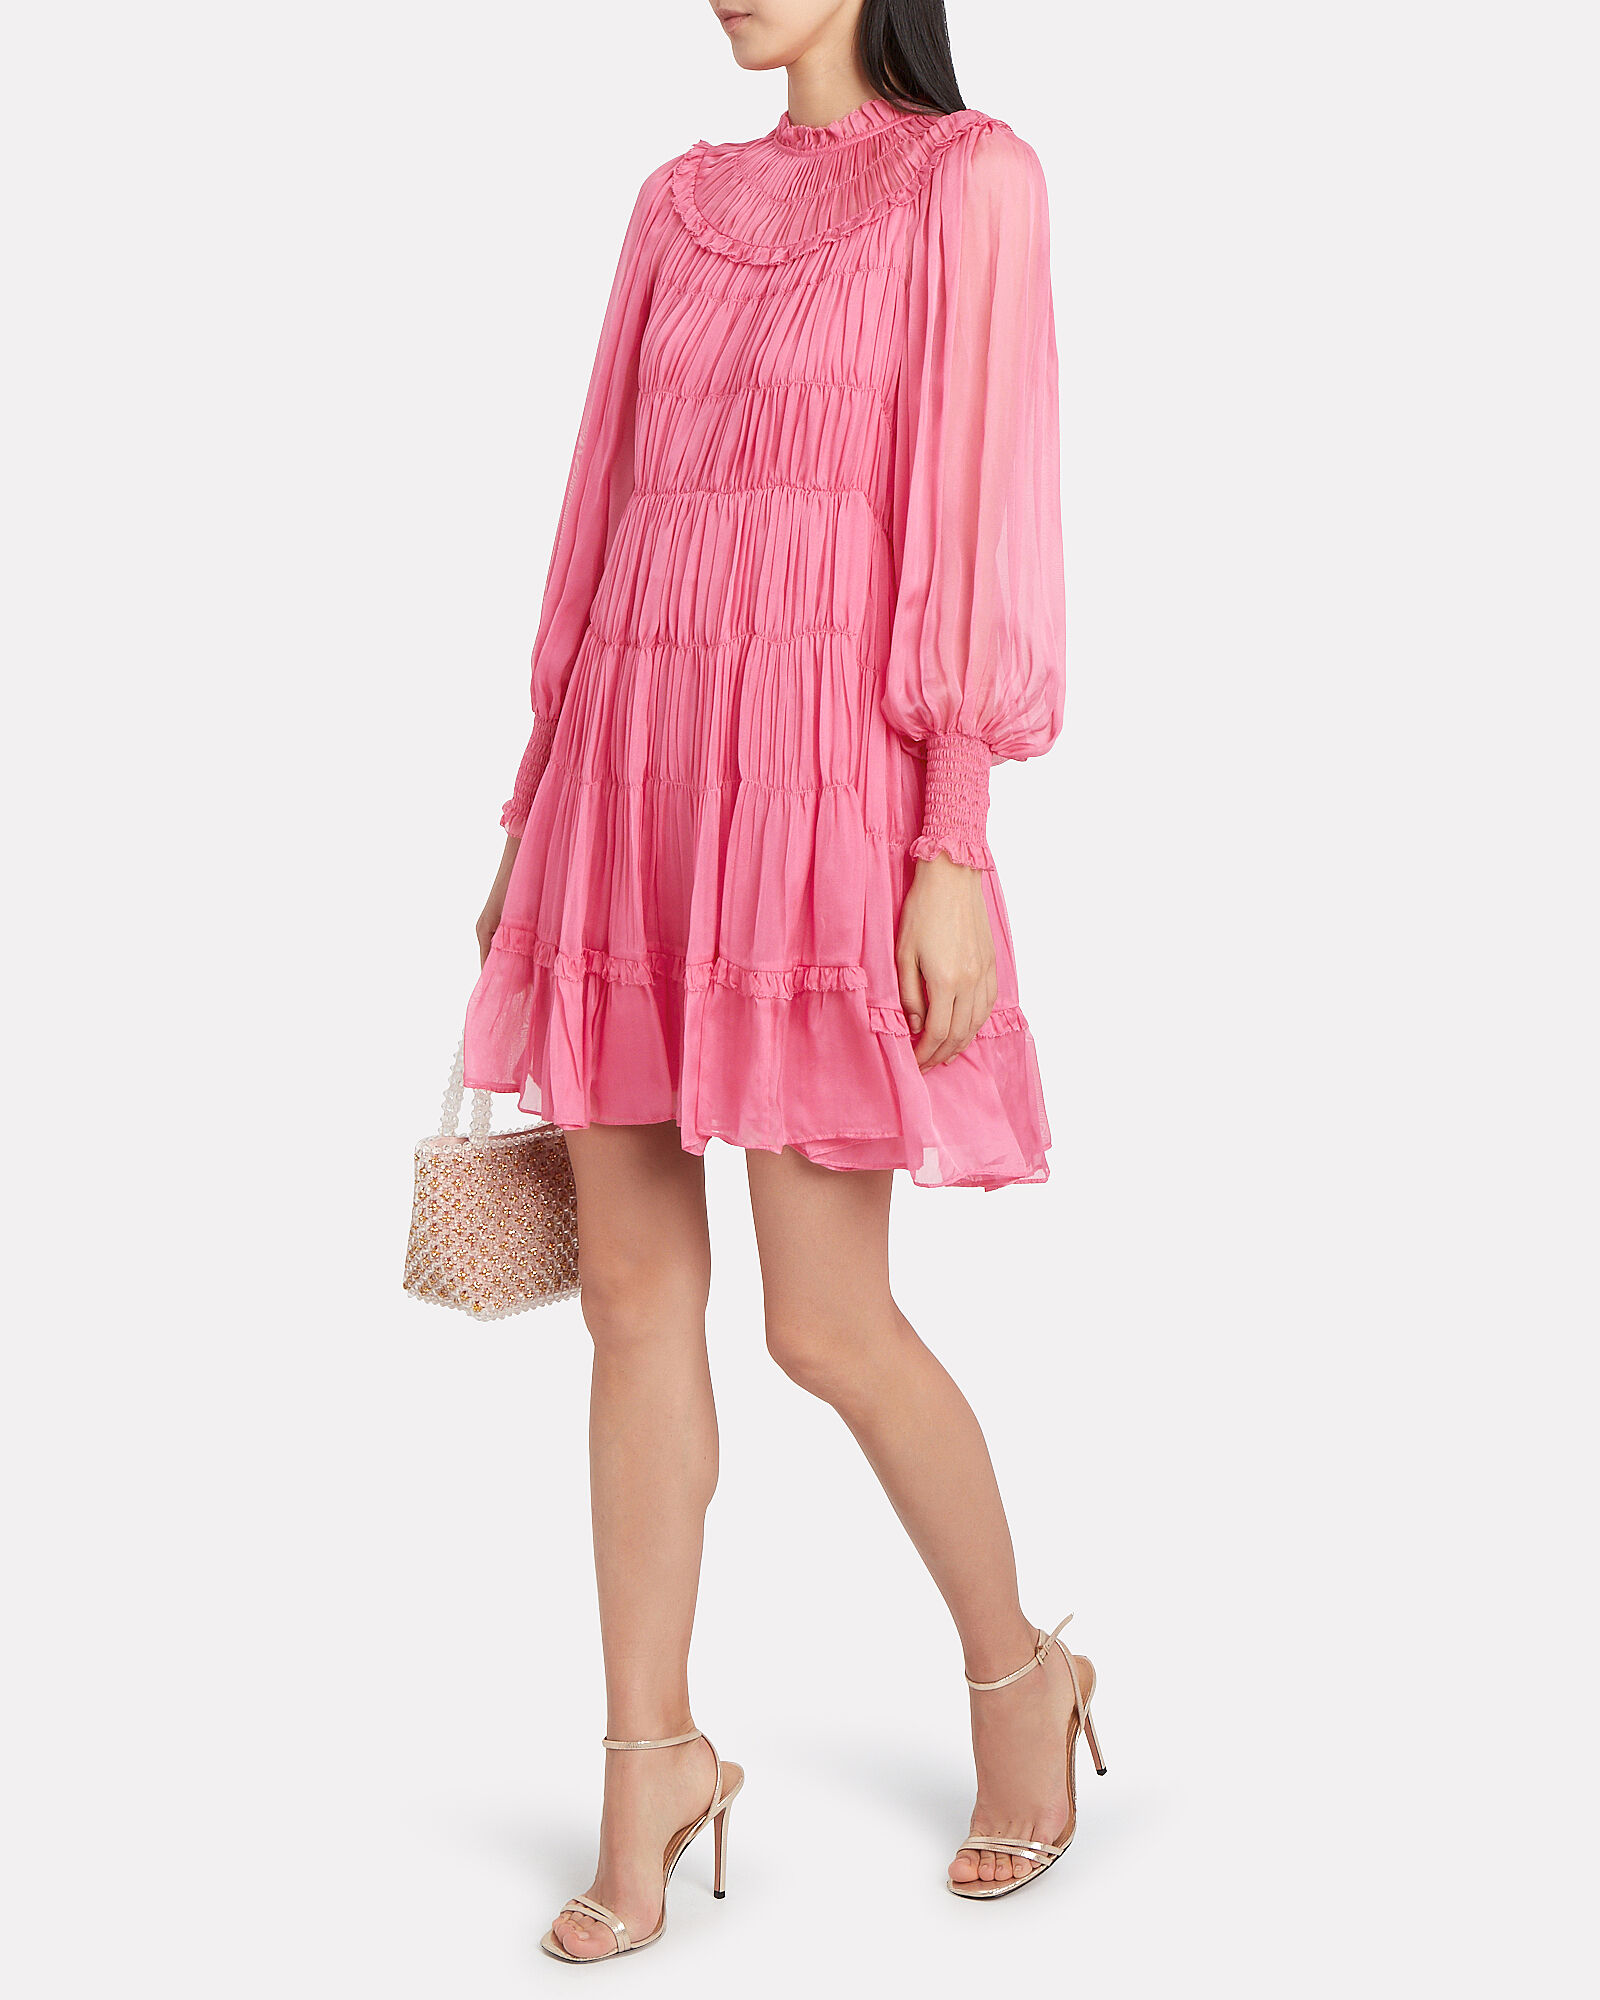 Emmaline Silk Habotai Pleated Dress, FUCHSIA, hi-res